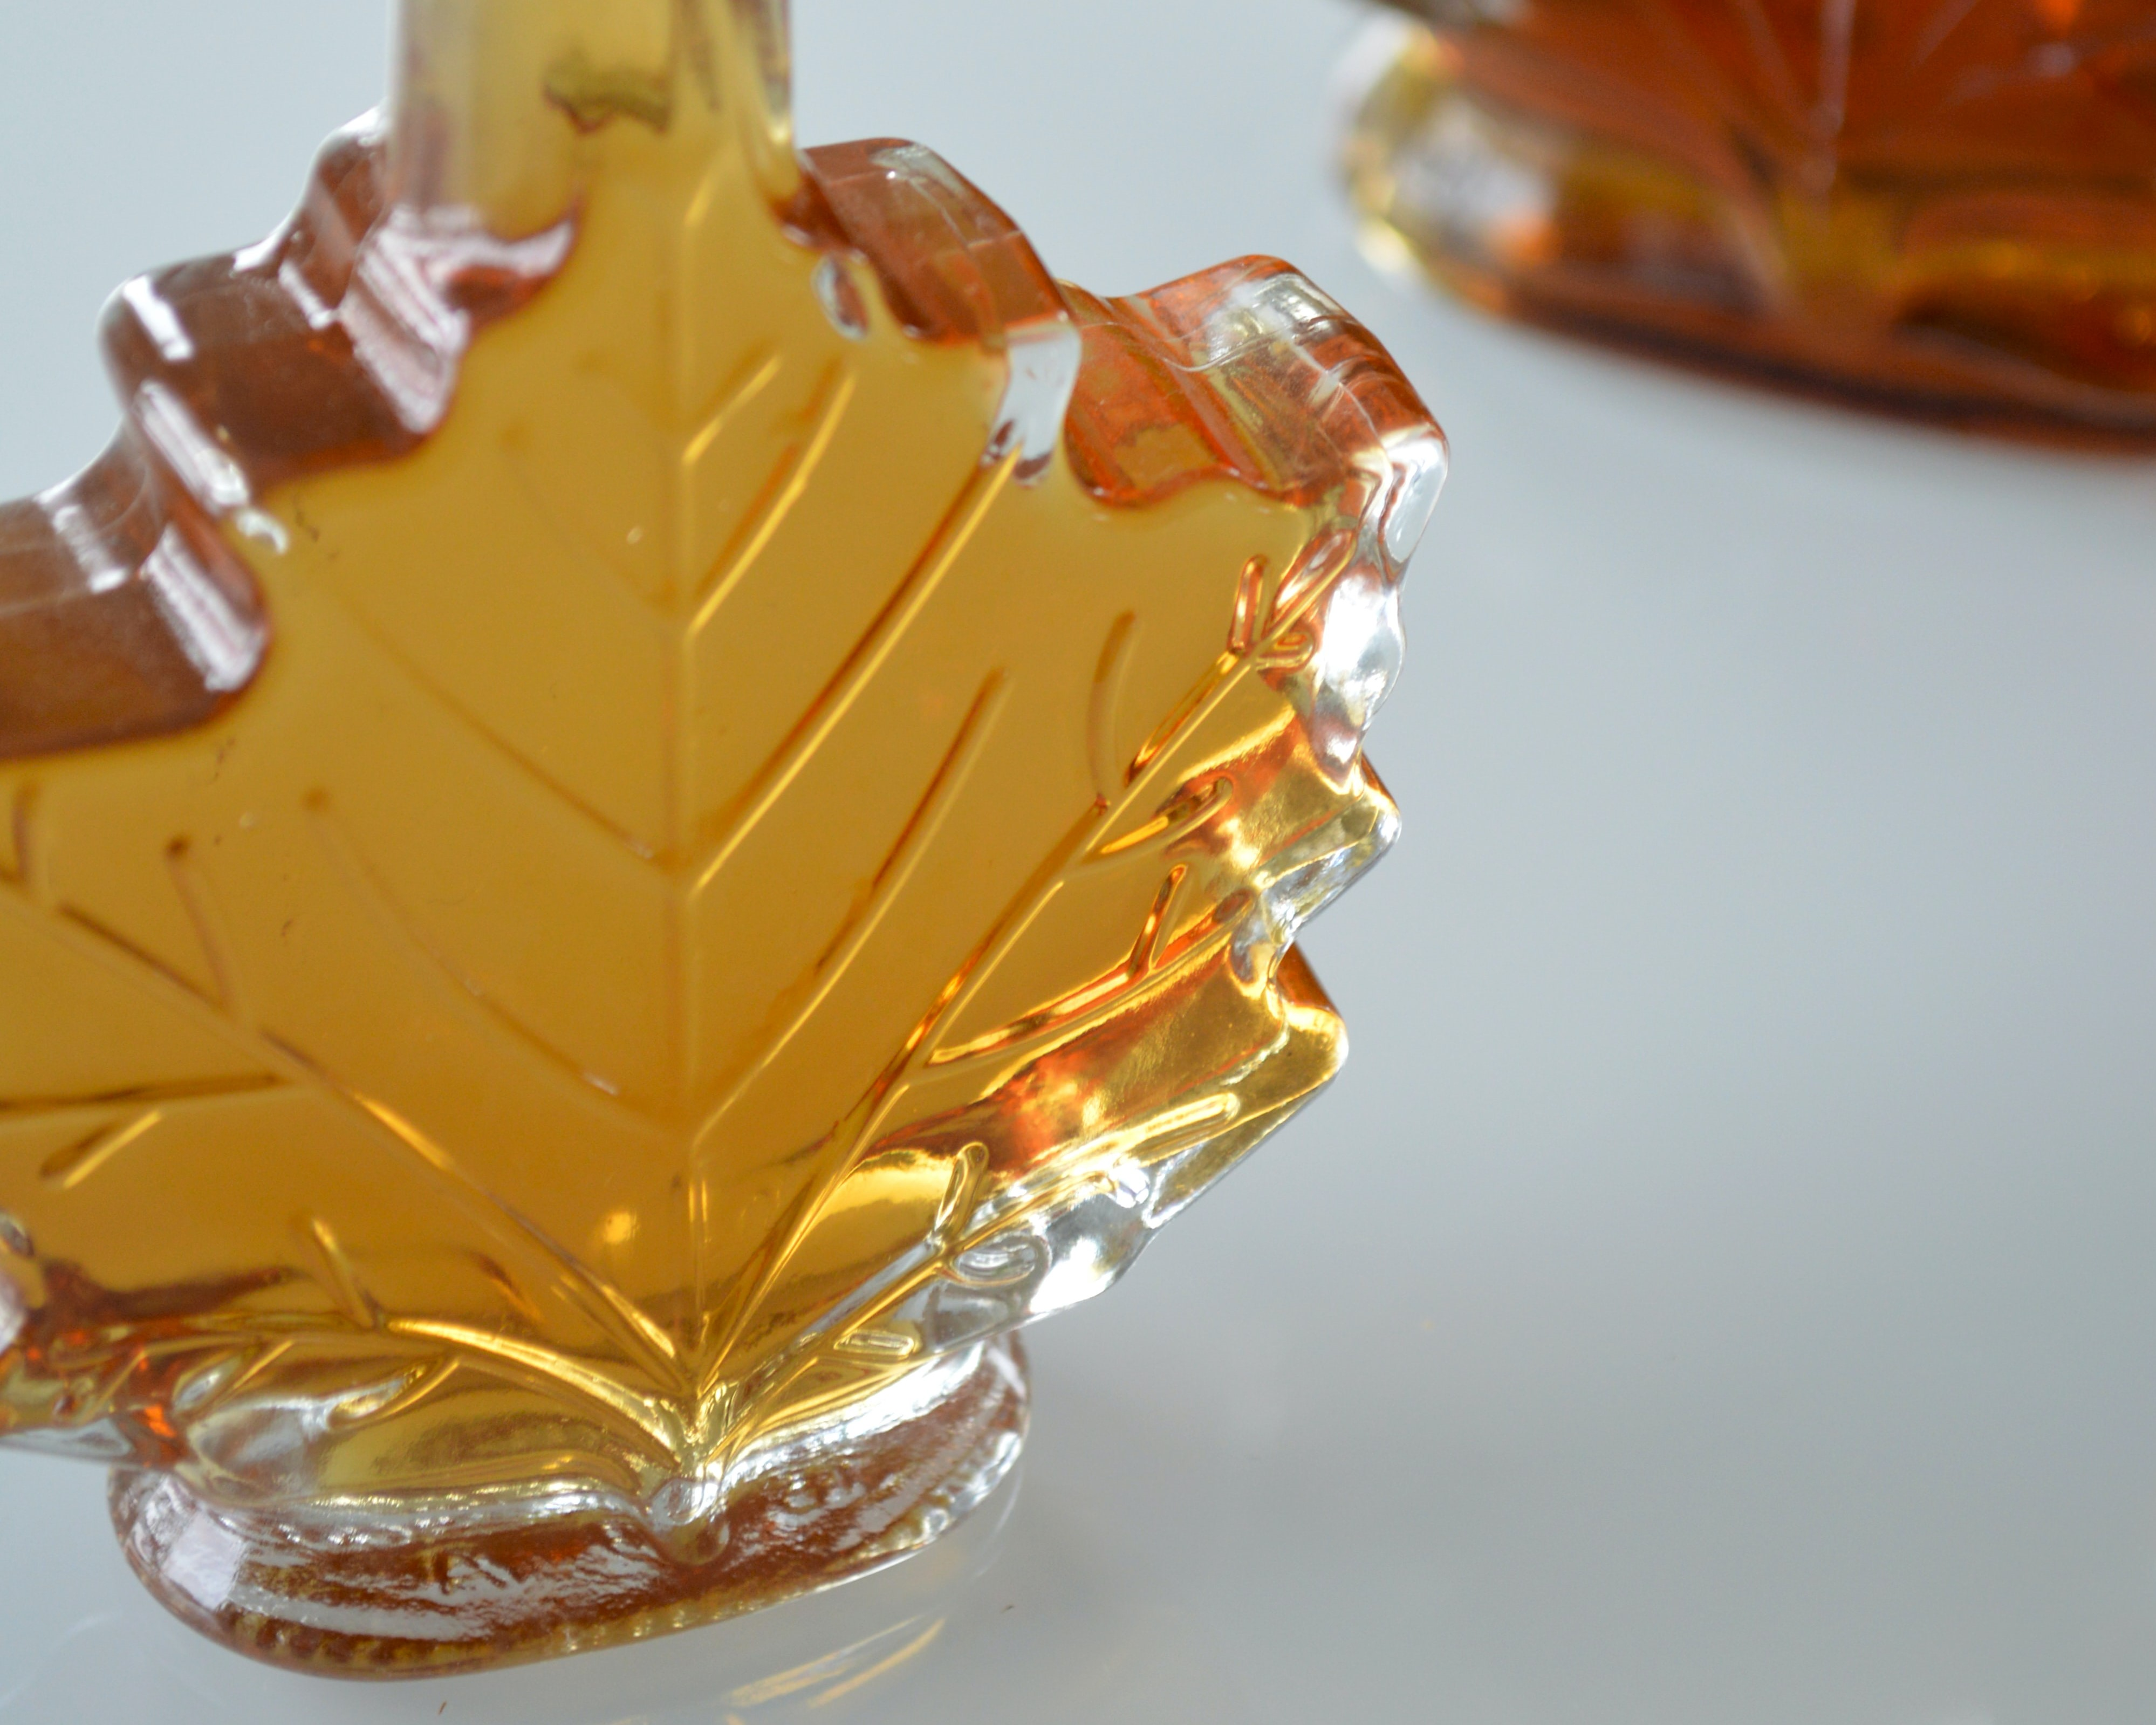 Photo of a glass maple leaf shaped bottle containing maple syrup.